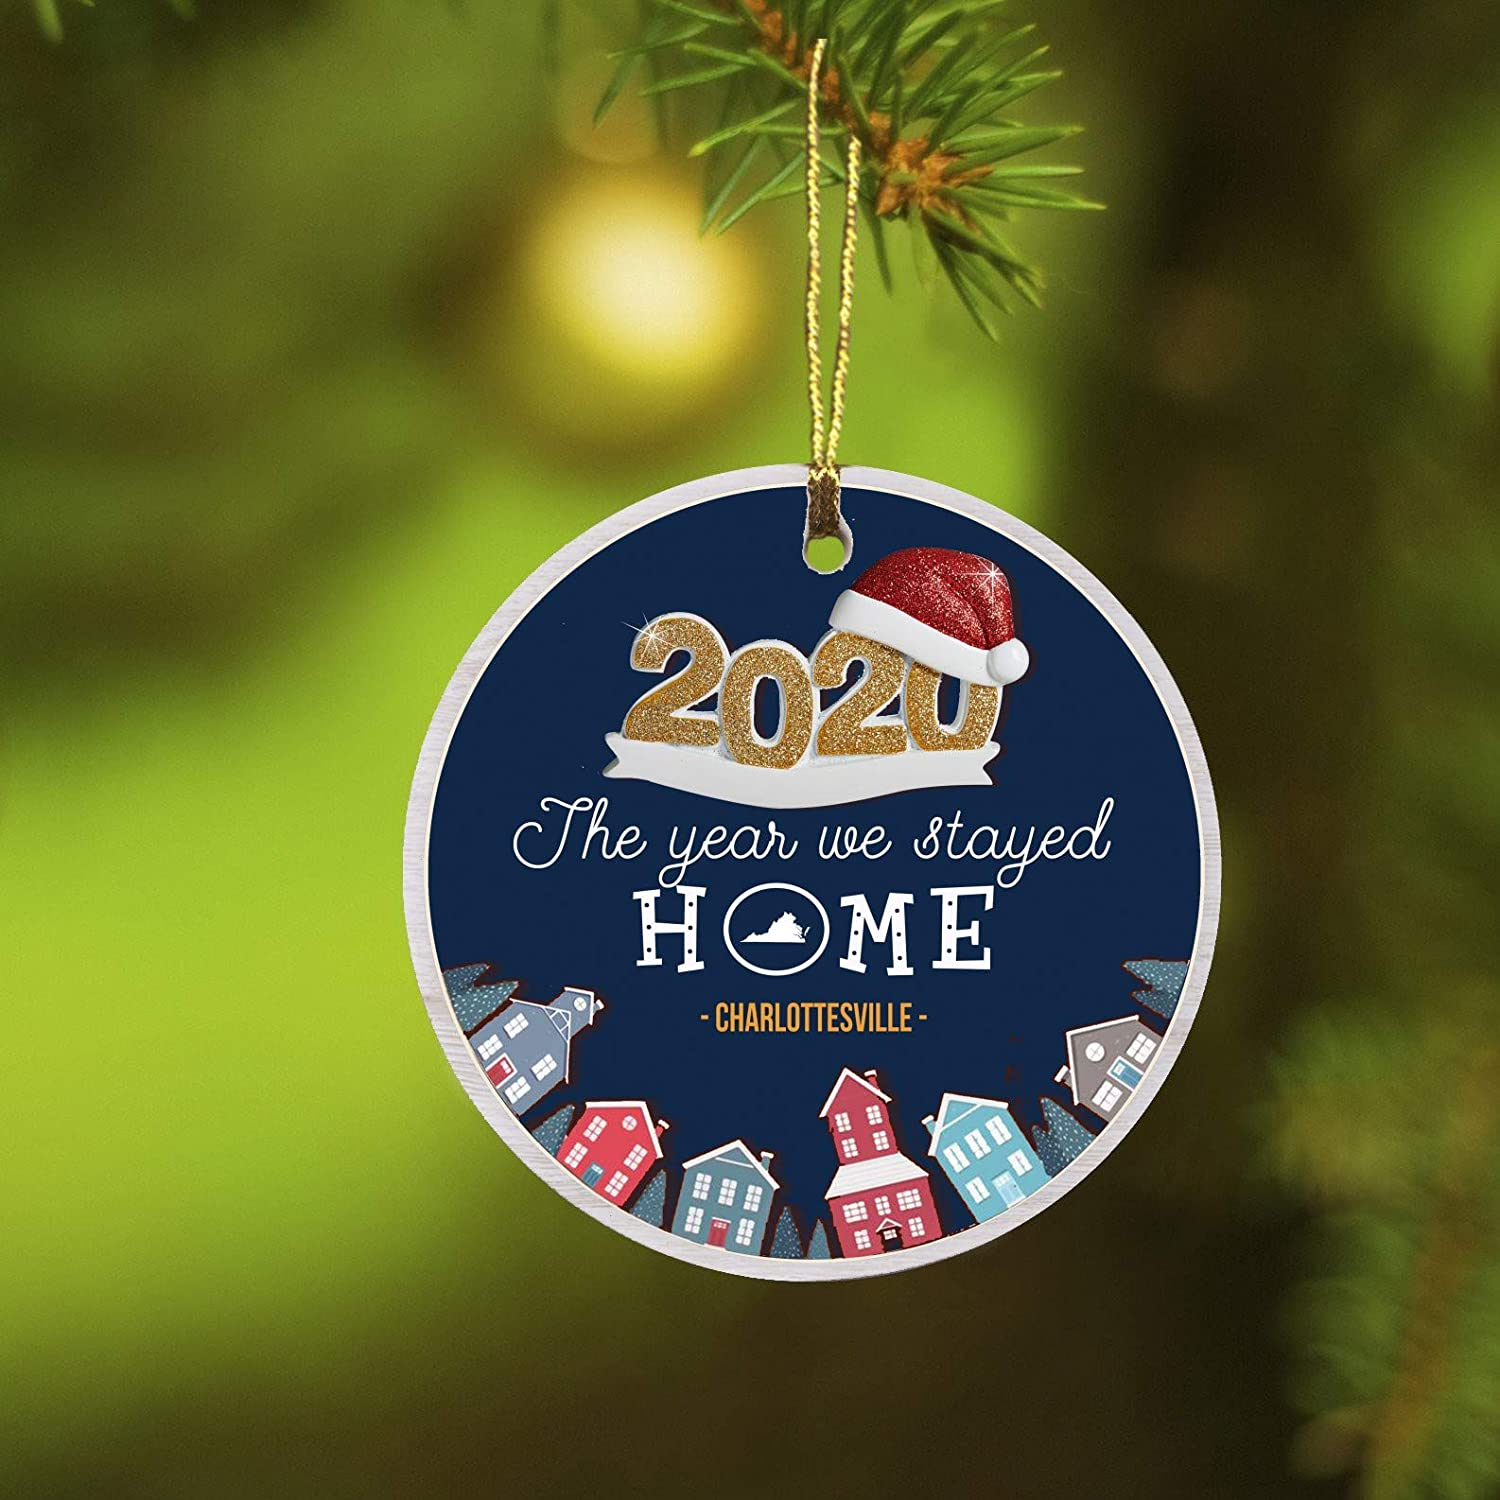 Christmas Free Meal 2021 Charlottesville Amazon Com Christmas Ornament 2020 Charlottesville Virginia State Rustic Ornaments Tree Funny Quarantine Gift For Friends Family Ornament Remember This Year Decorations Xmas Gifts 3 Kitchen Dining